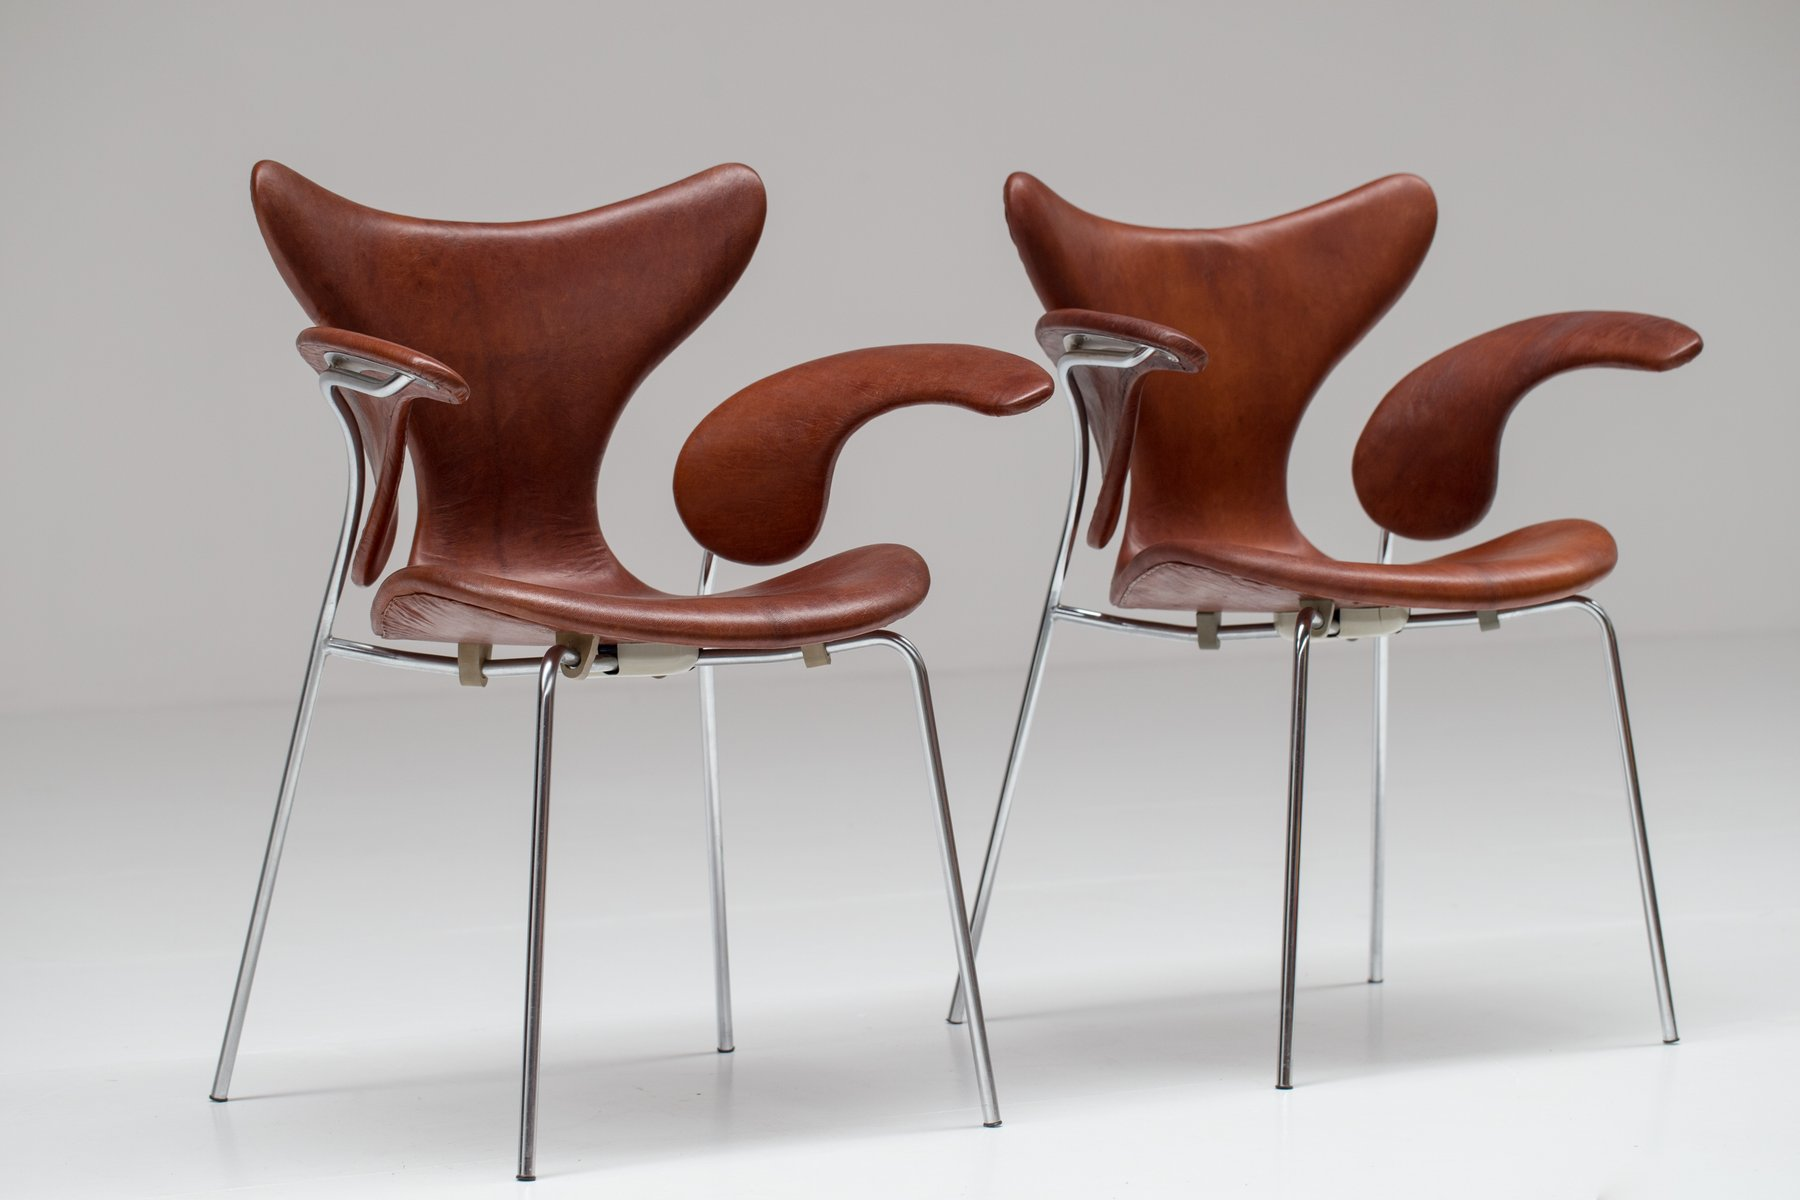 Arne Jacobsen Stoel : Seagull chairs by arne jacobsen 1960s set of 2 for sale at pamono